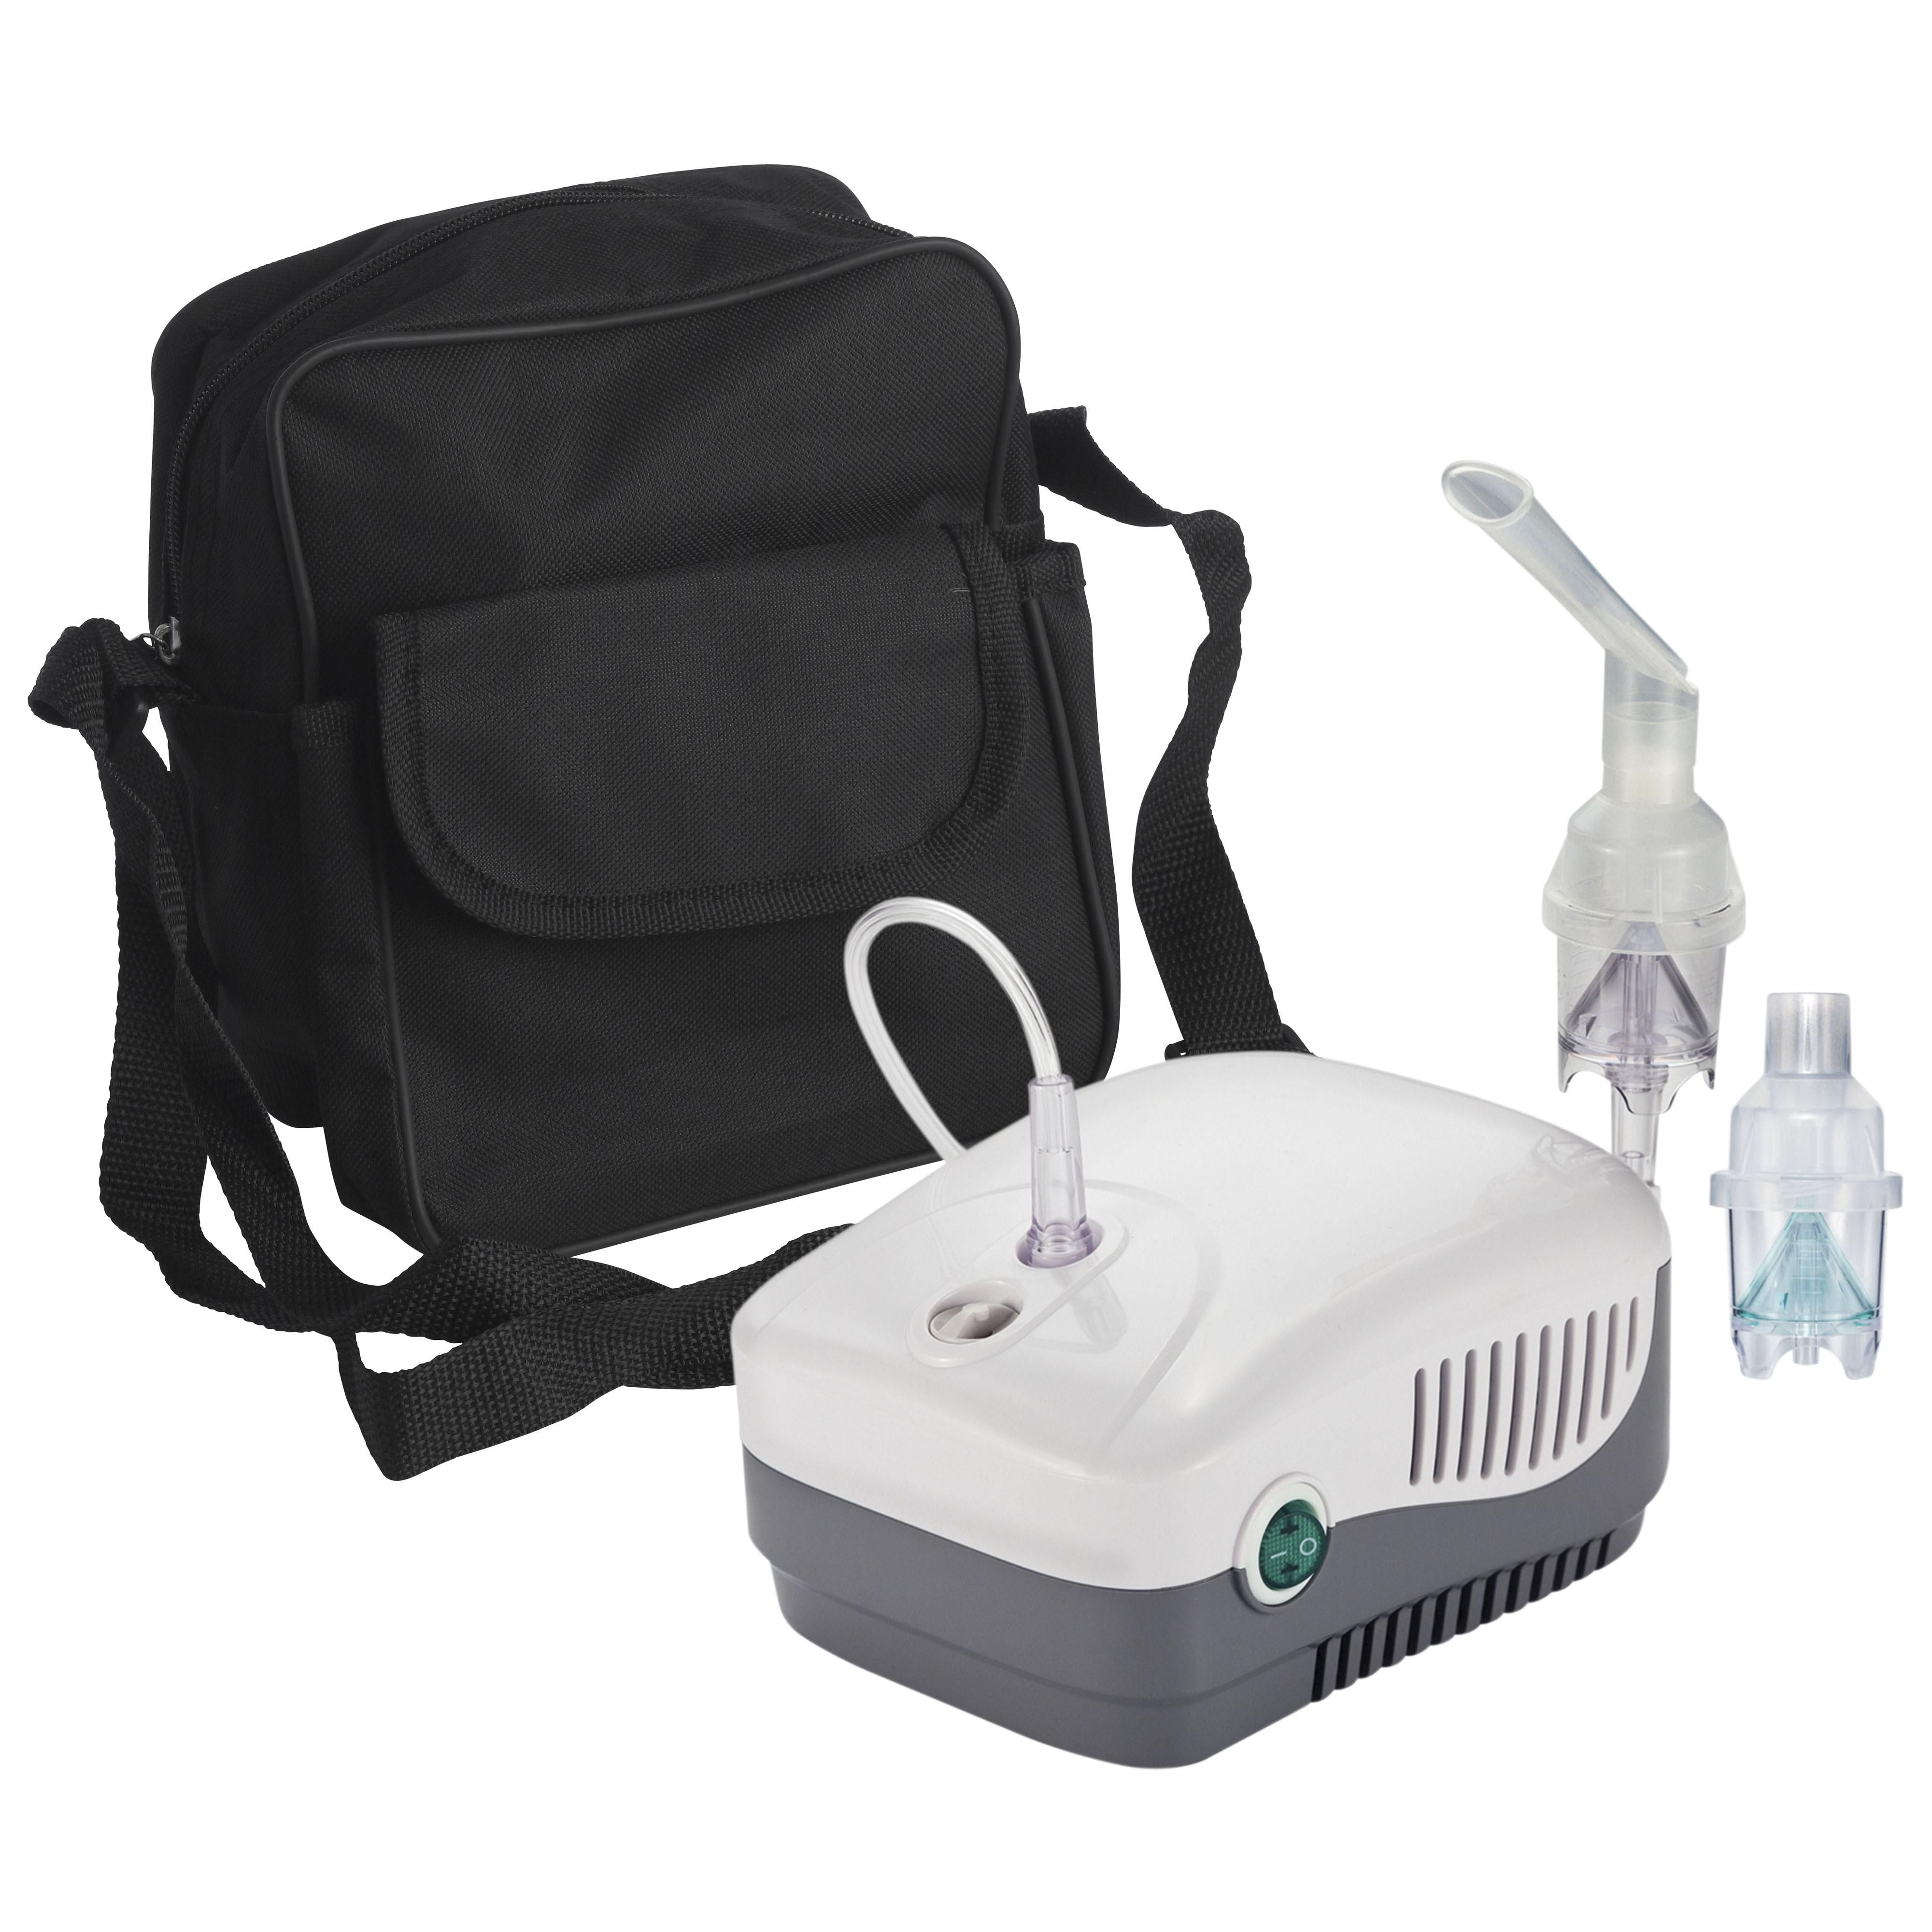 Drive DeVilbiss Healthcare MedNeb Plus Compressor Nebulizer with Carry Bag and Disposable and Reusable Neb Kits